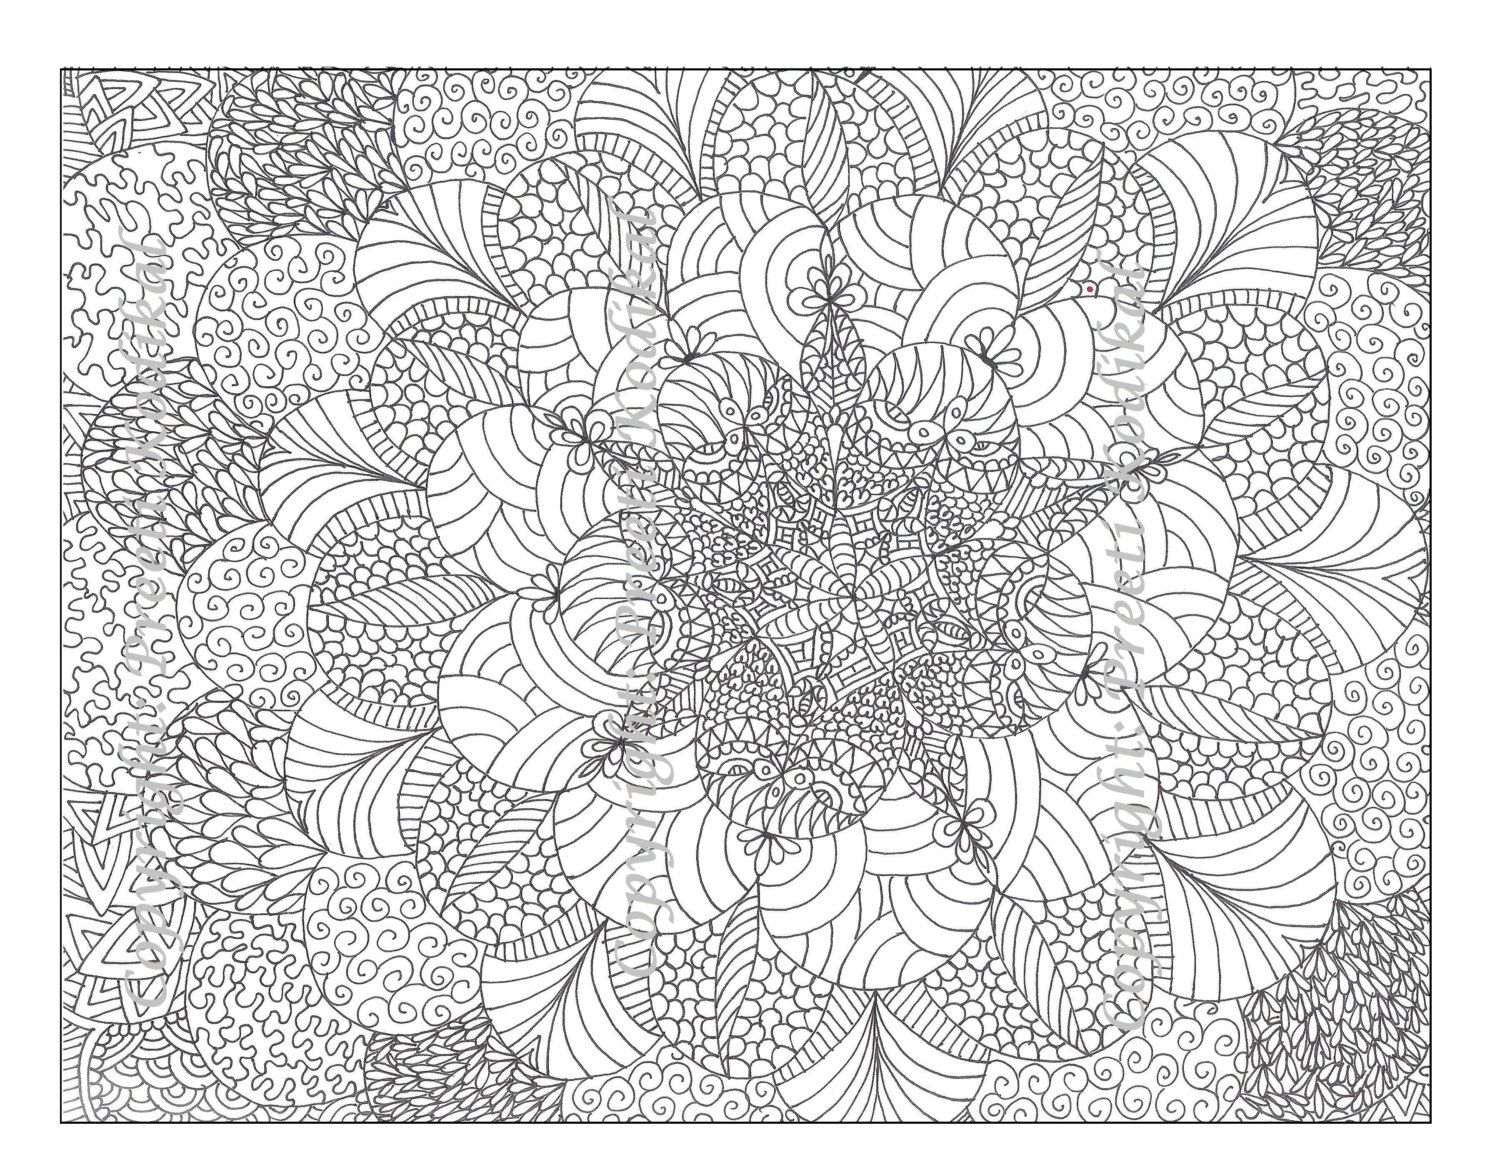 henna coloring pages pen illustration printable coloring page zentangle inspired henna or